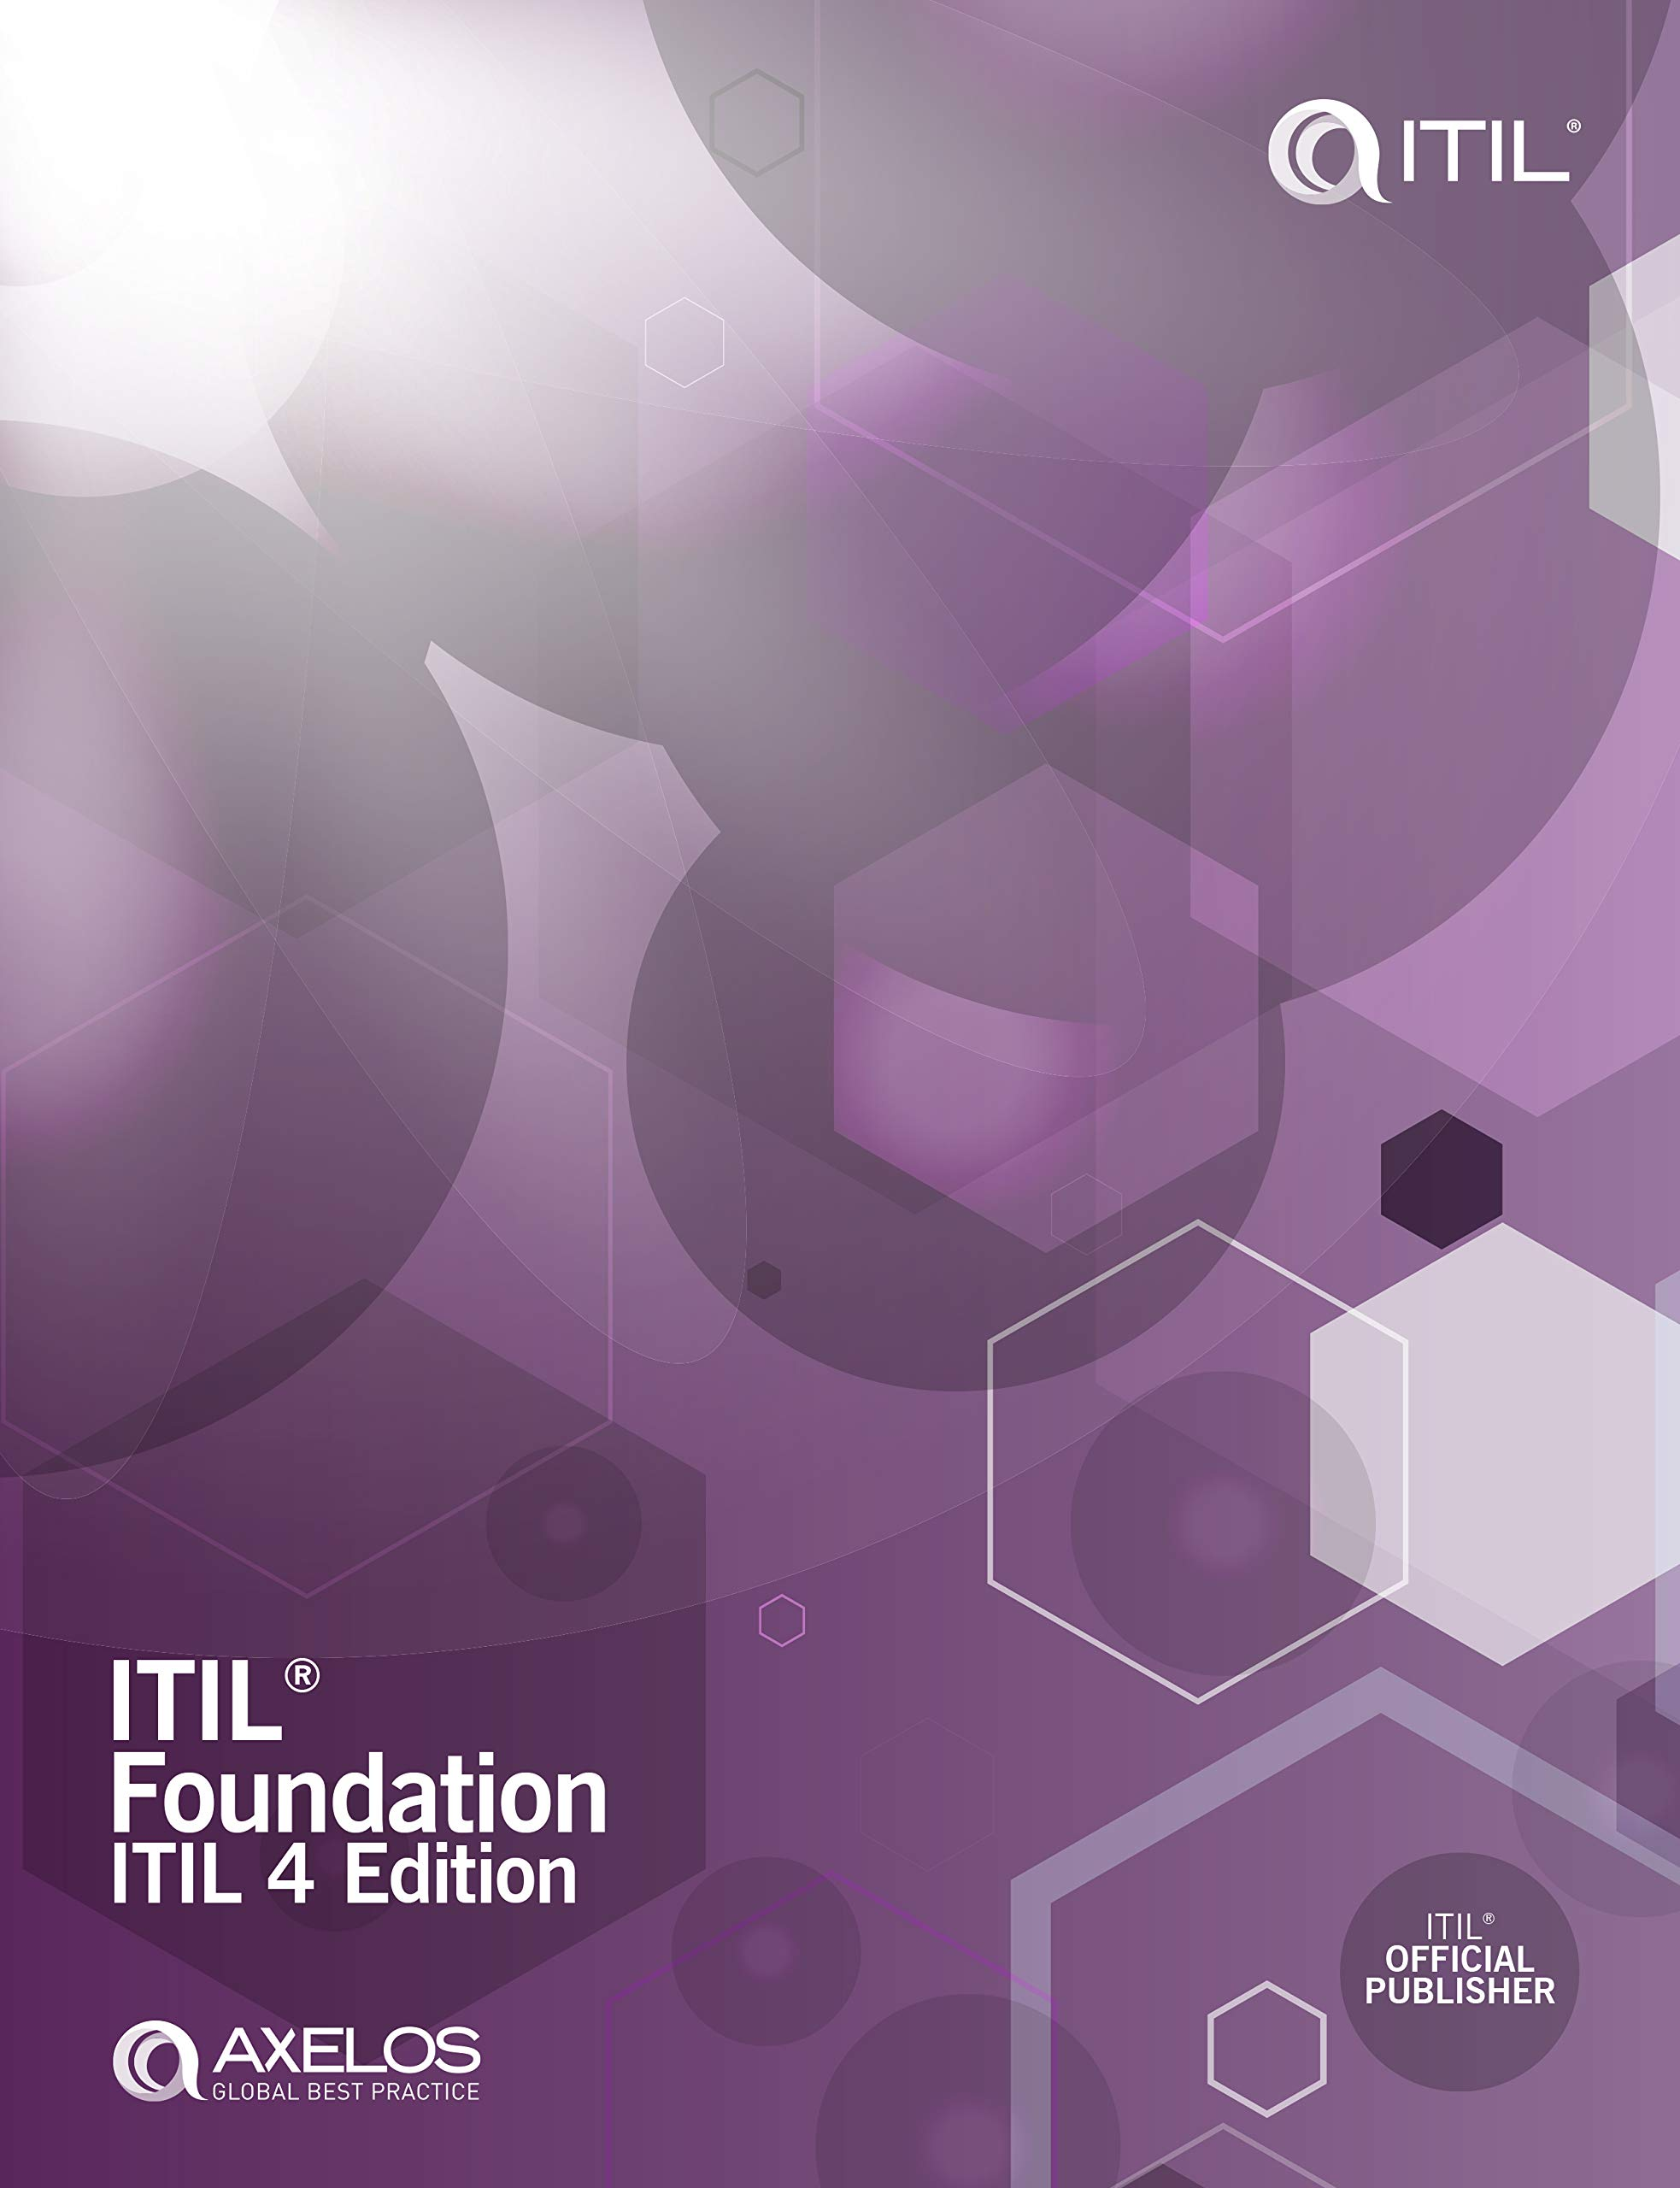 Itil Foundation Amazon Axelos 9780113316076 Books